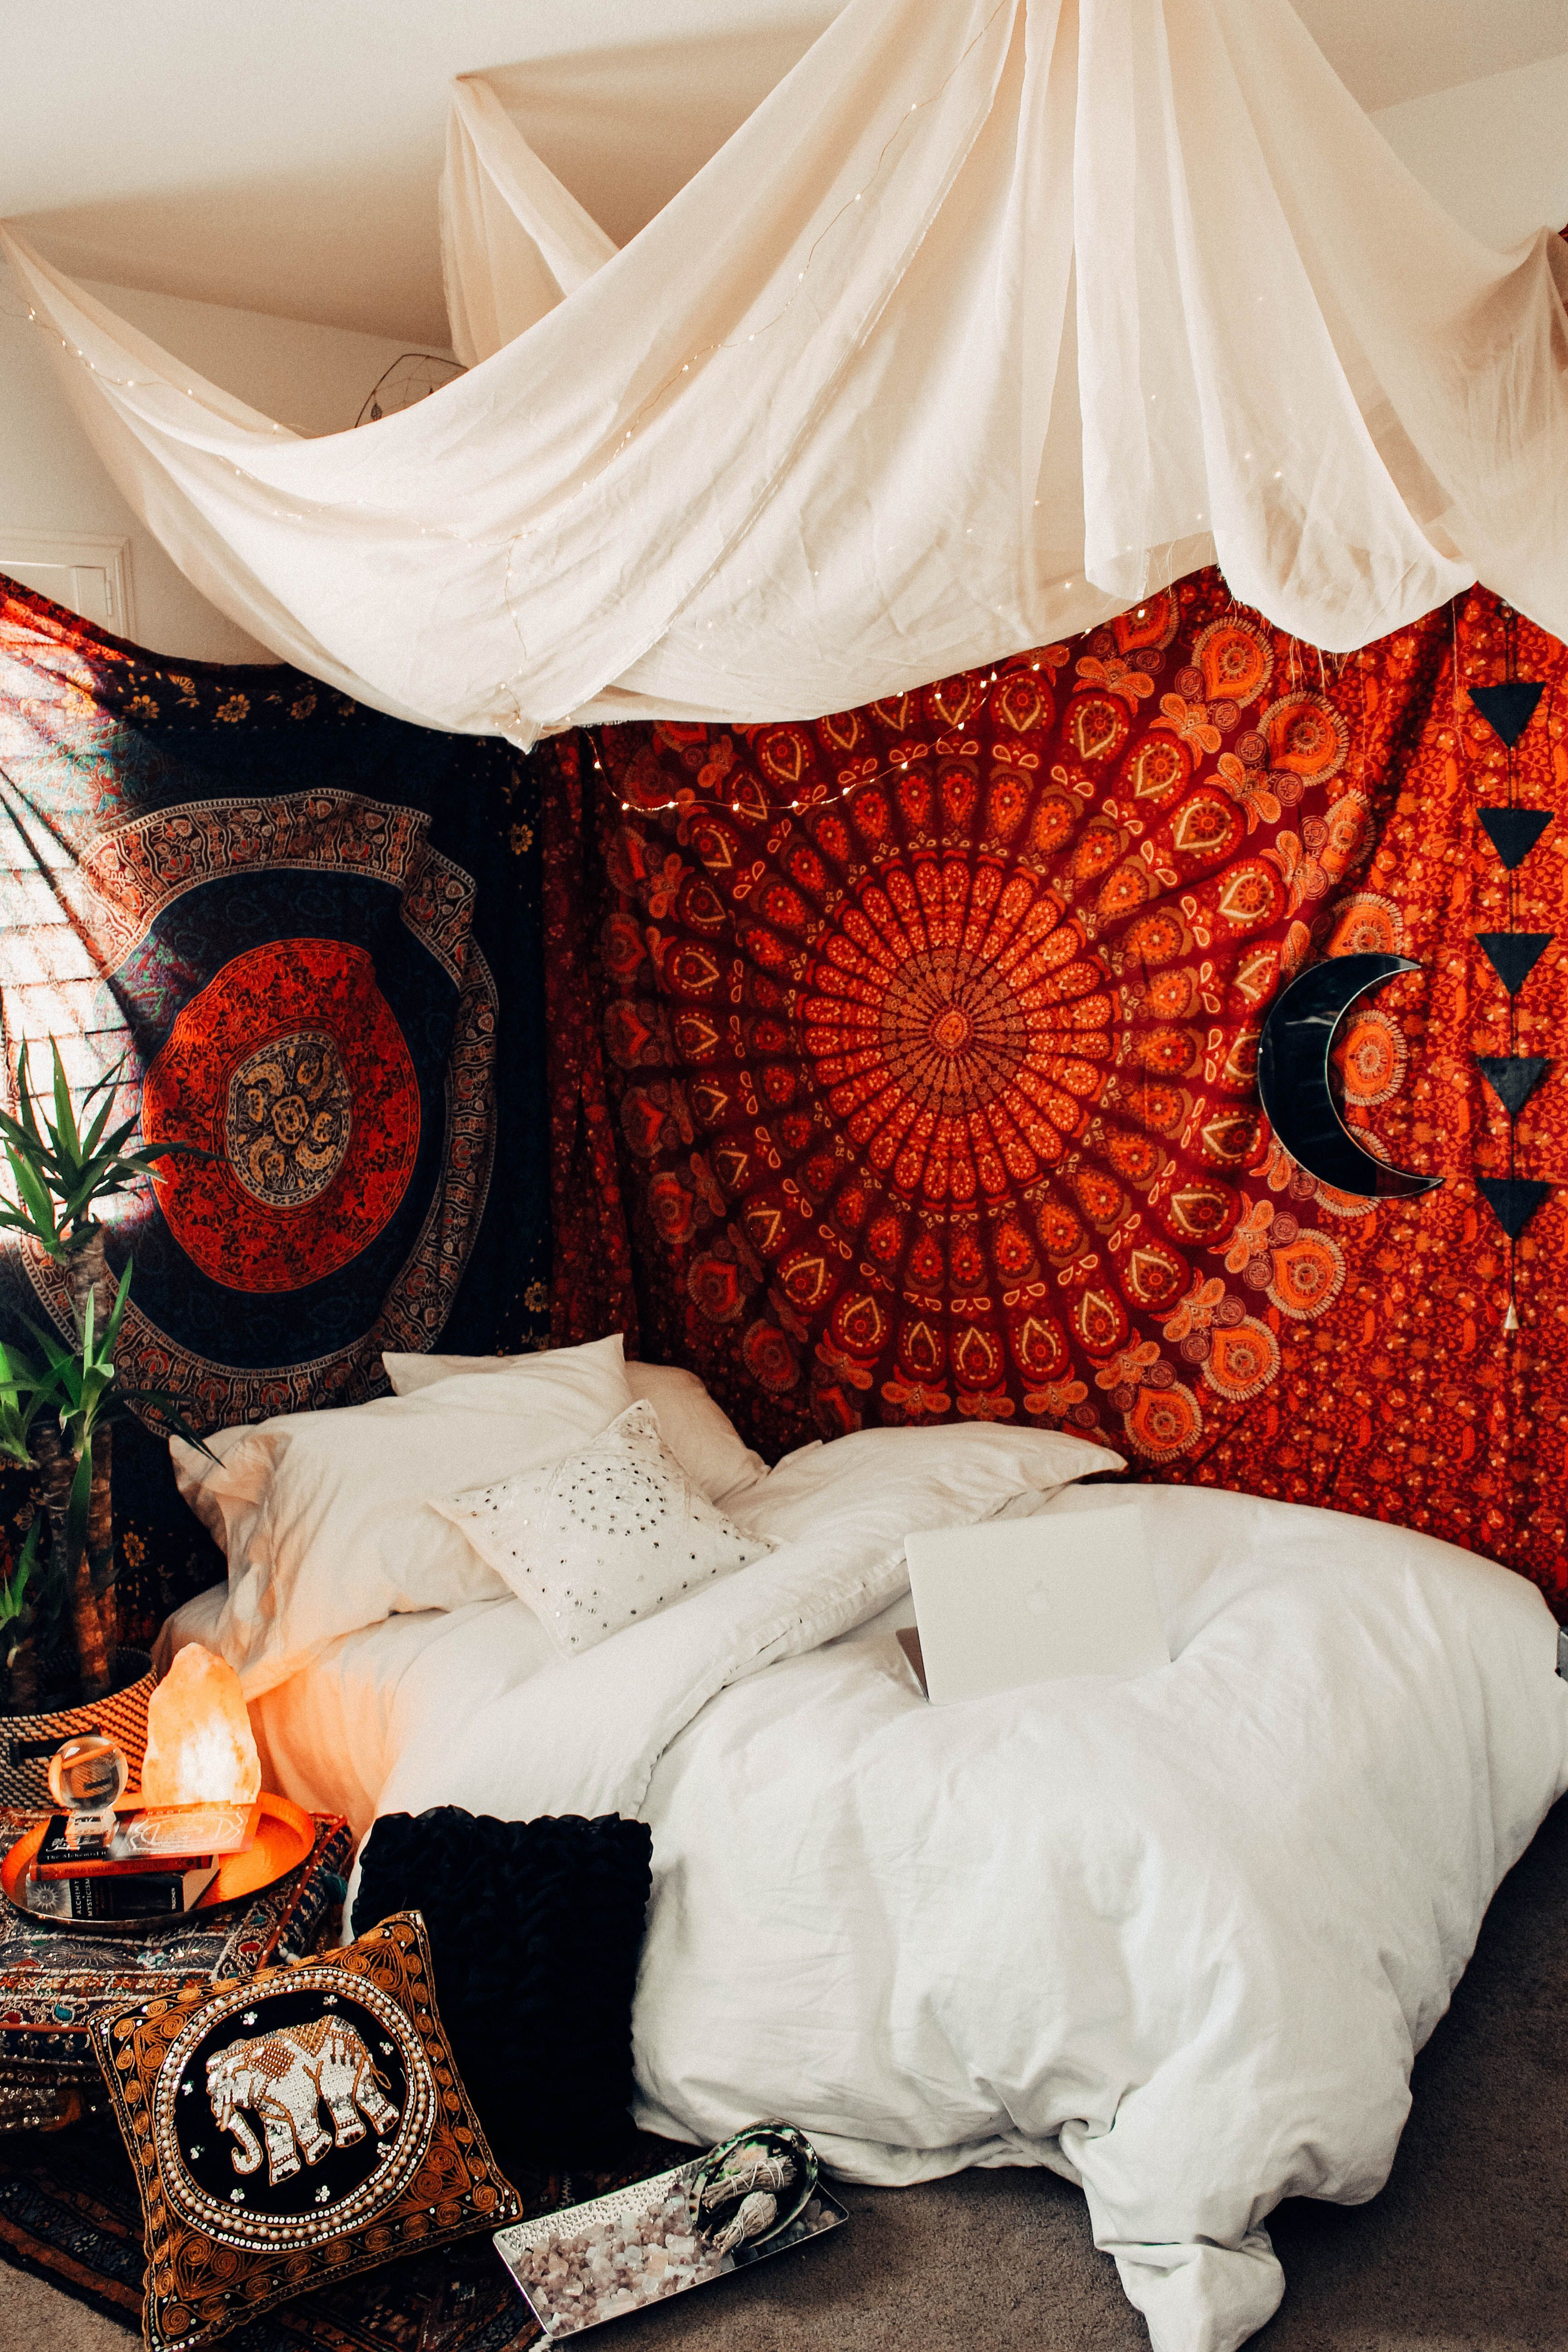 30 Beautiful Bohemian Bedroom Decor Ideas For Your Home is part of Bohemian bedroom decor - Bohemian, can be interpreted as a free life like an artist  The bohemian style here refers to the rebel style, quirky, artsy, rather vintage, rustic, and has an ethnic touch  Here I want to discuss the bohemian style applied to the bedroom design  To design this style there is no    Read More